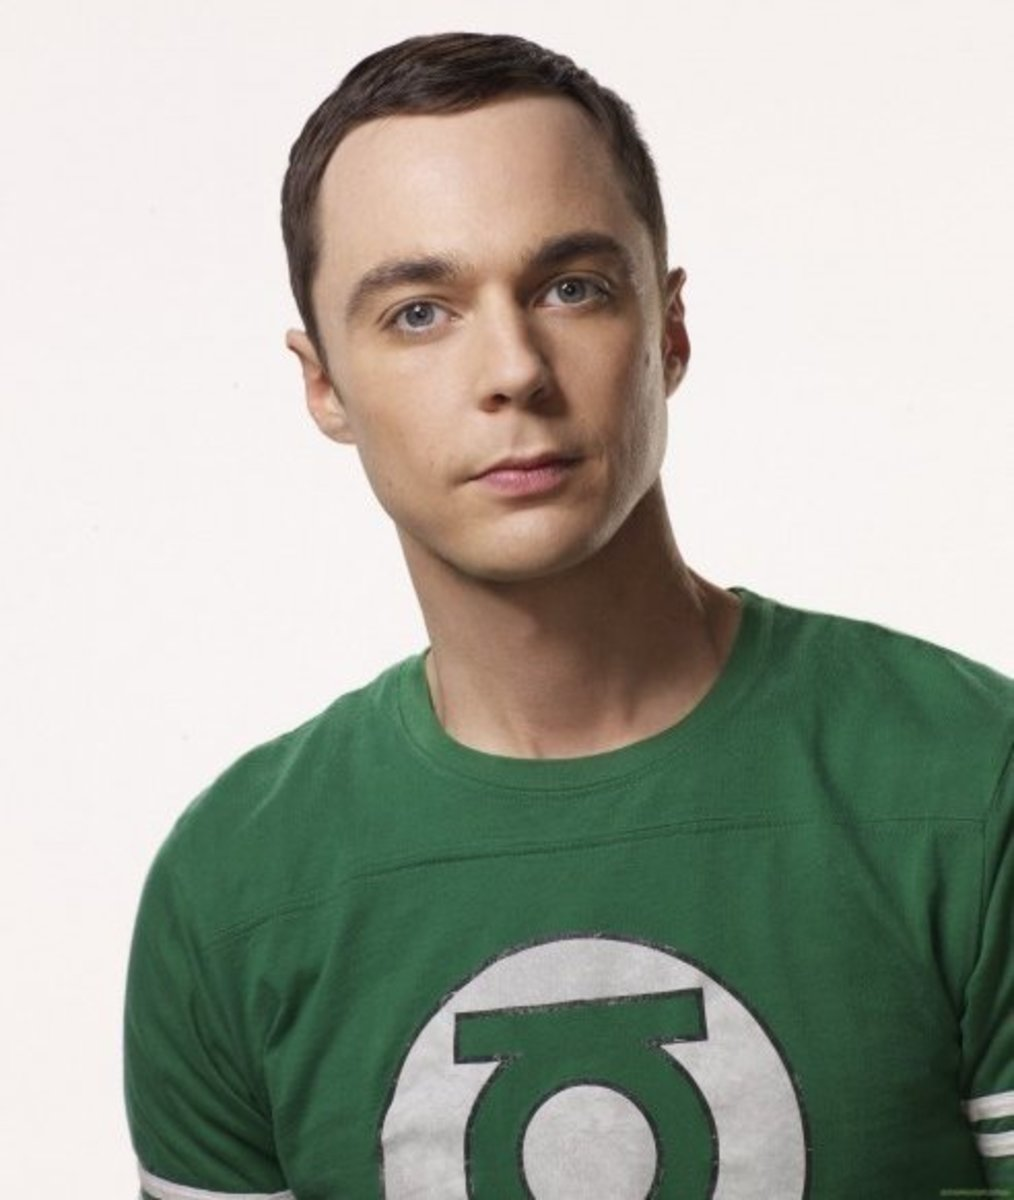 Sheldon is not the one to display a lot of emotion except during the time of a scientific discovery or comic book trivia